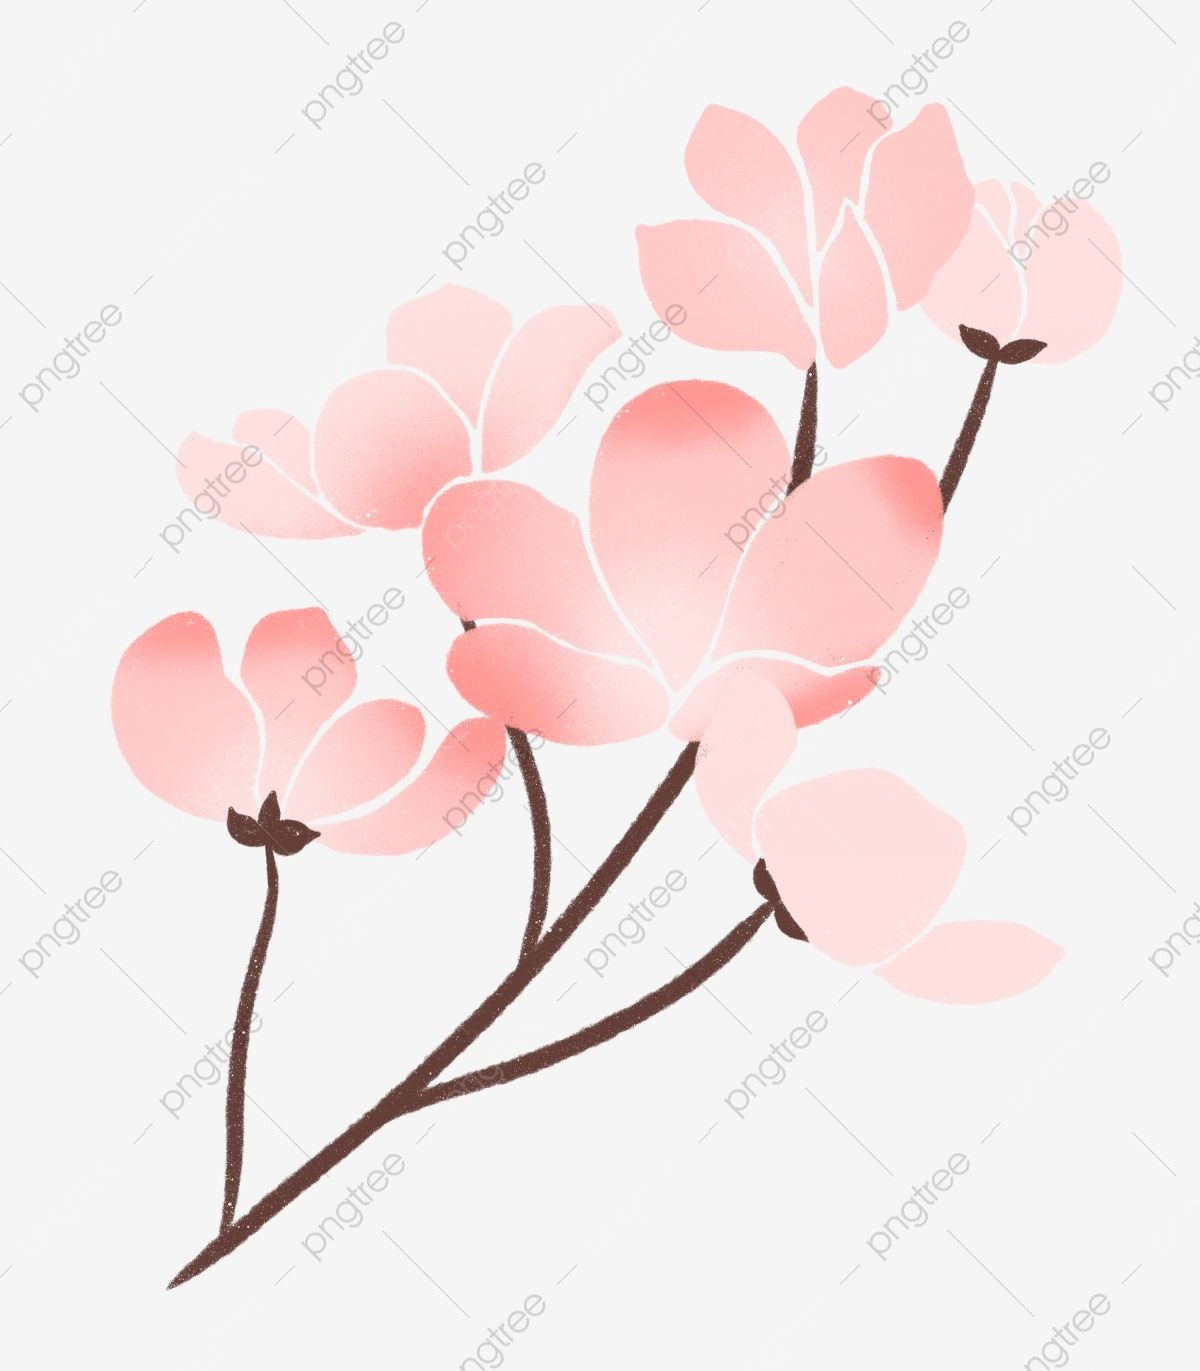 Spring Pink Flowers Illustration Spring Flowers Cartoon Illustration Spring Illustration Png Transparent Clipart Image And Psd File For Free Download